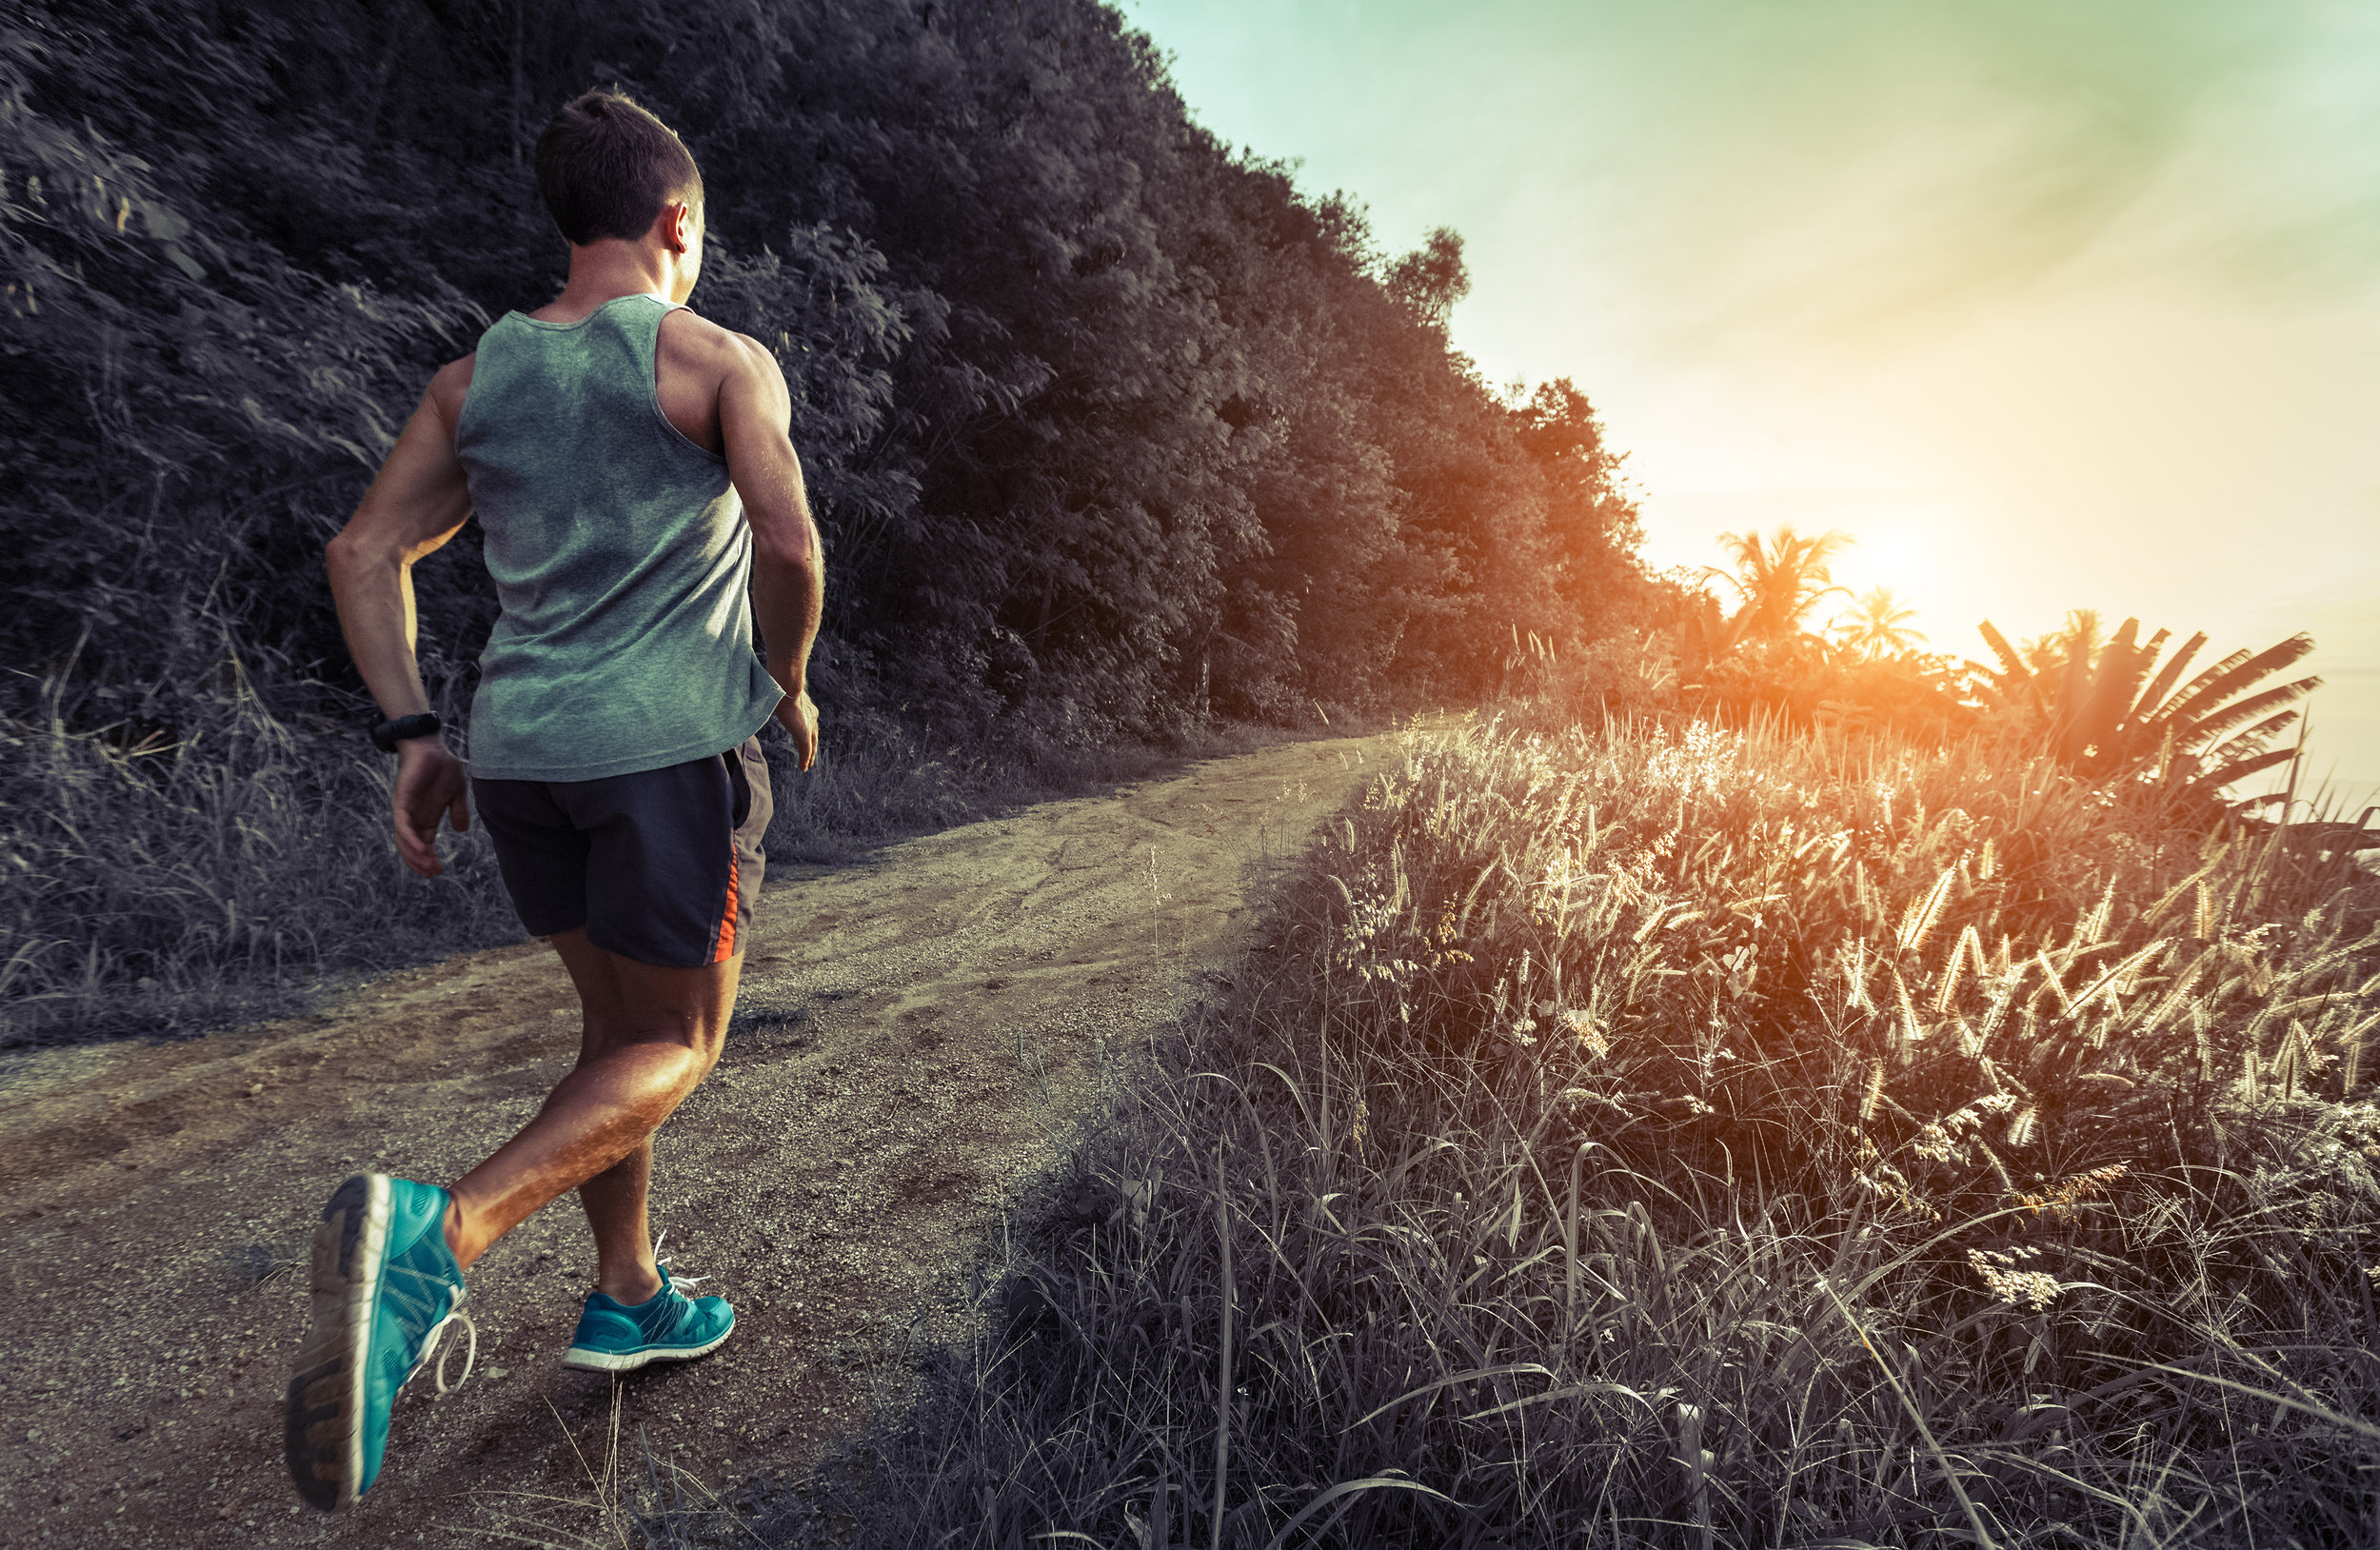 Why Do I Feel Out Of Breath When Running?